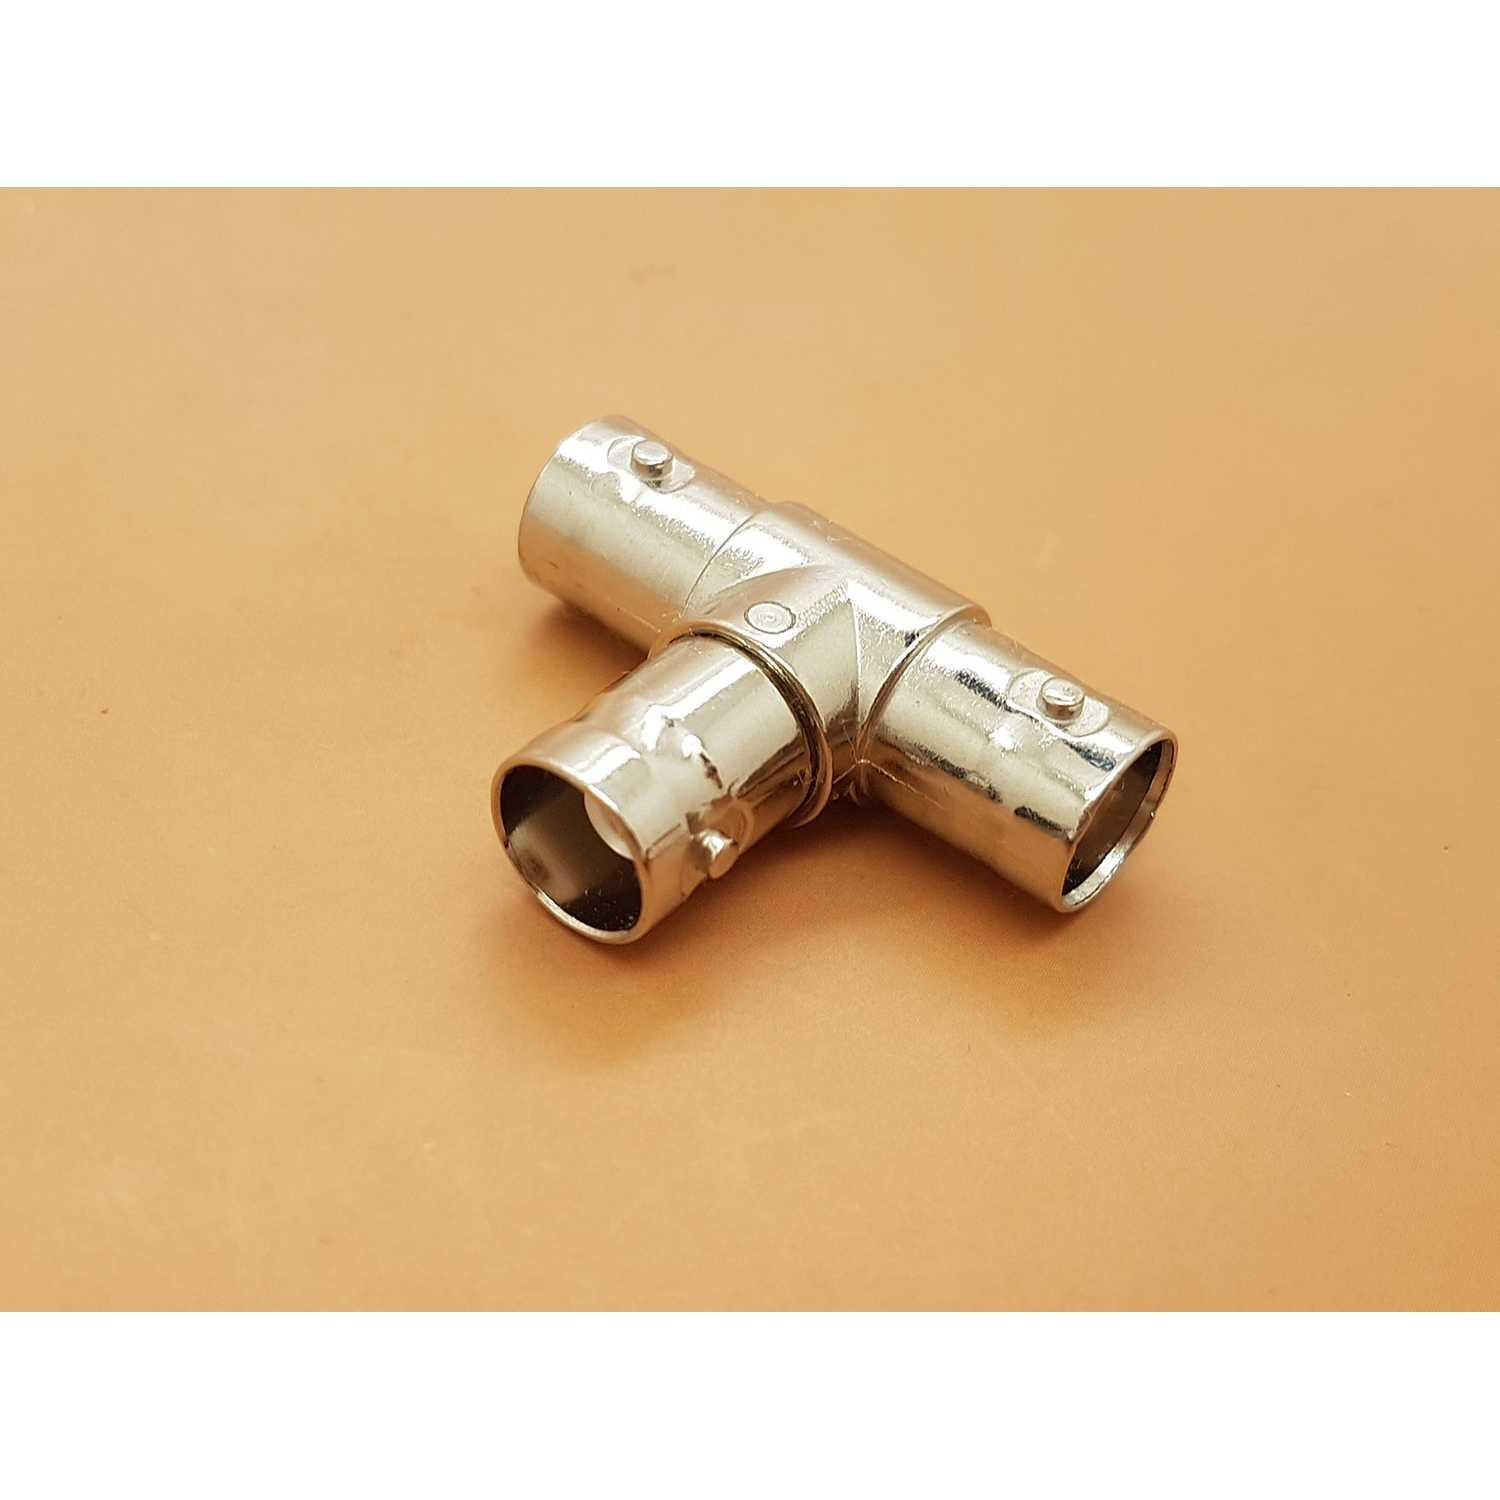 Buy Sell Cheapest Jack Konektor Connector Best Quality Product Rj45 Ori Belden Rj 45 Cat5e Lan Networking Per 1 Pcs Ready Stock Idr 19000 Idr19000 View Detail T Coaxial Bnc For Cctv